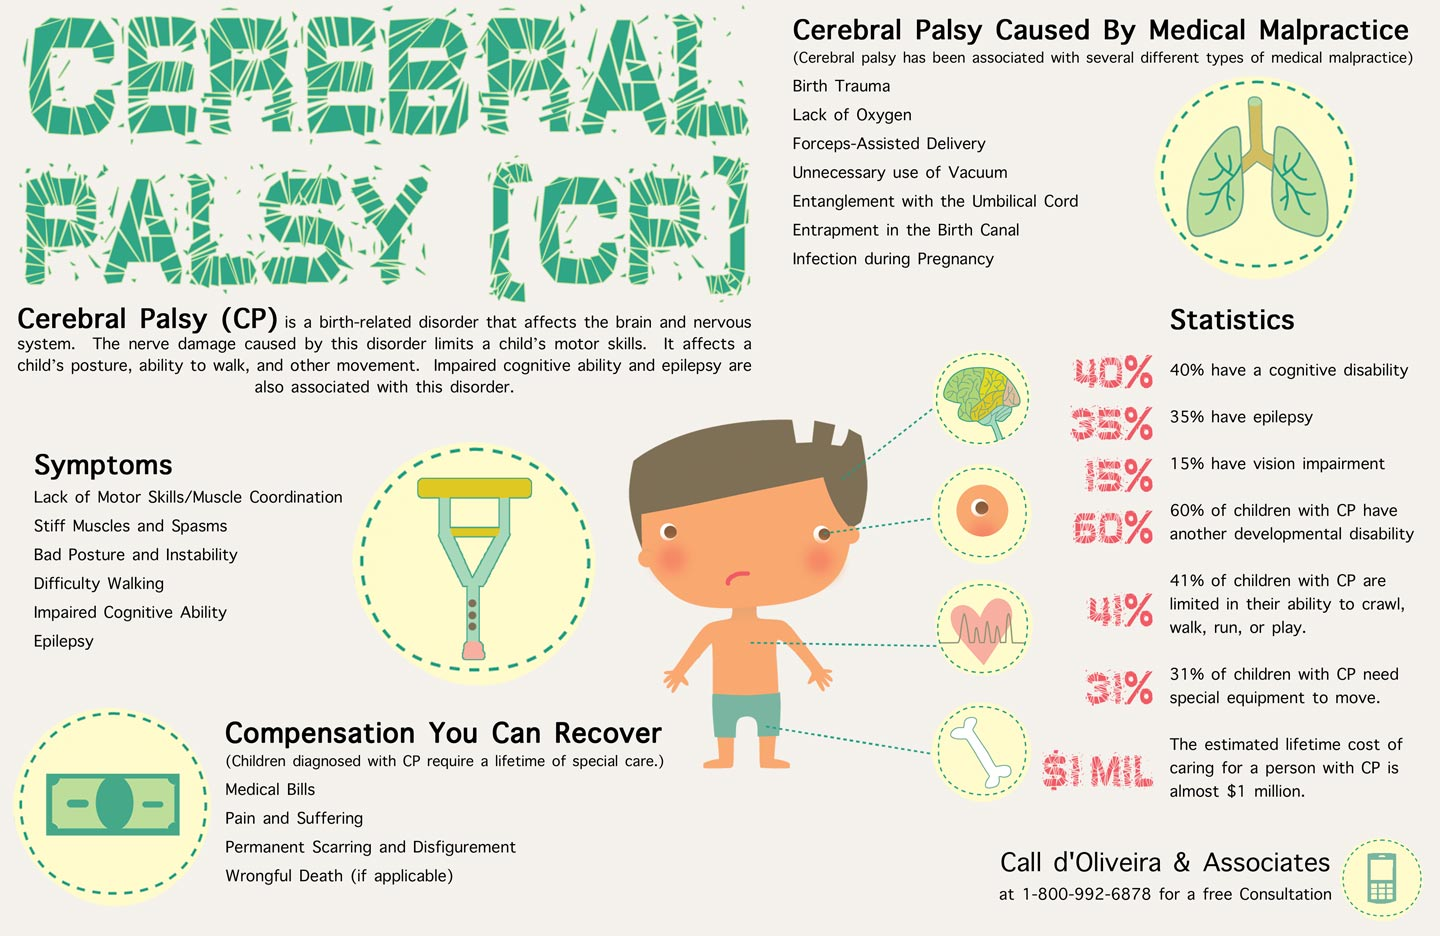 Kinesiology & Sport Review: Rehabilitation: Cerebral Palsy